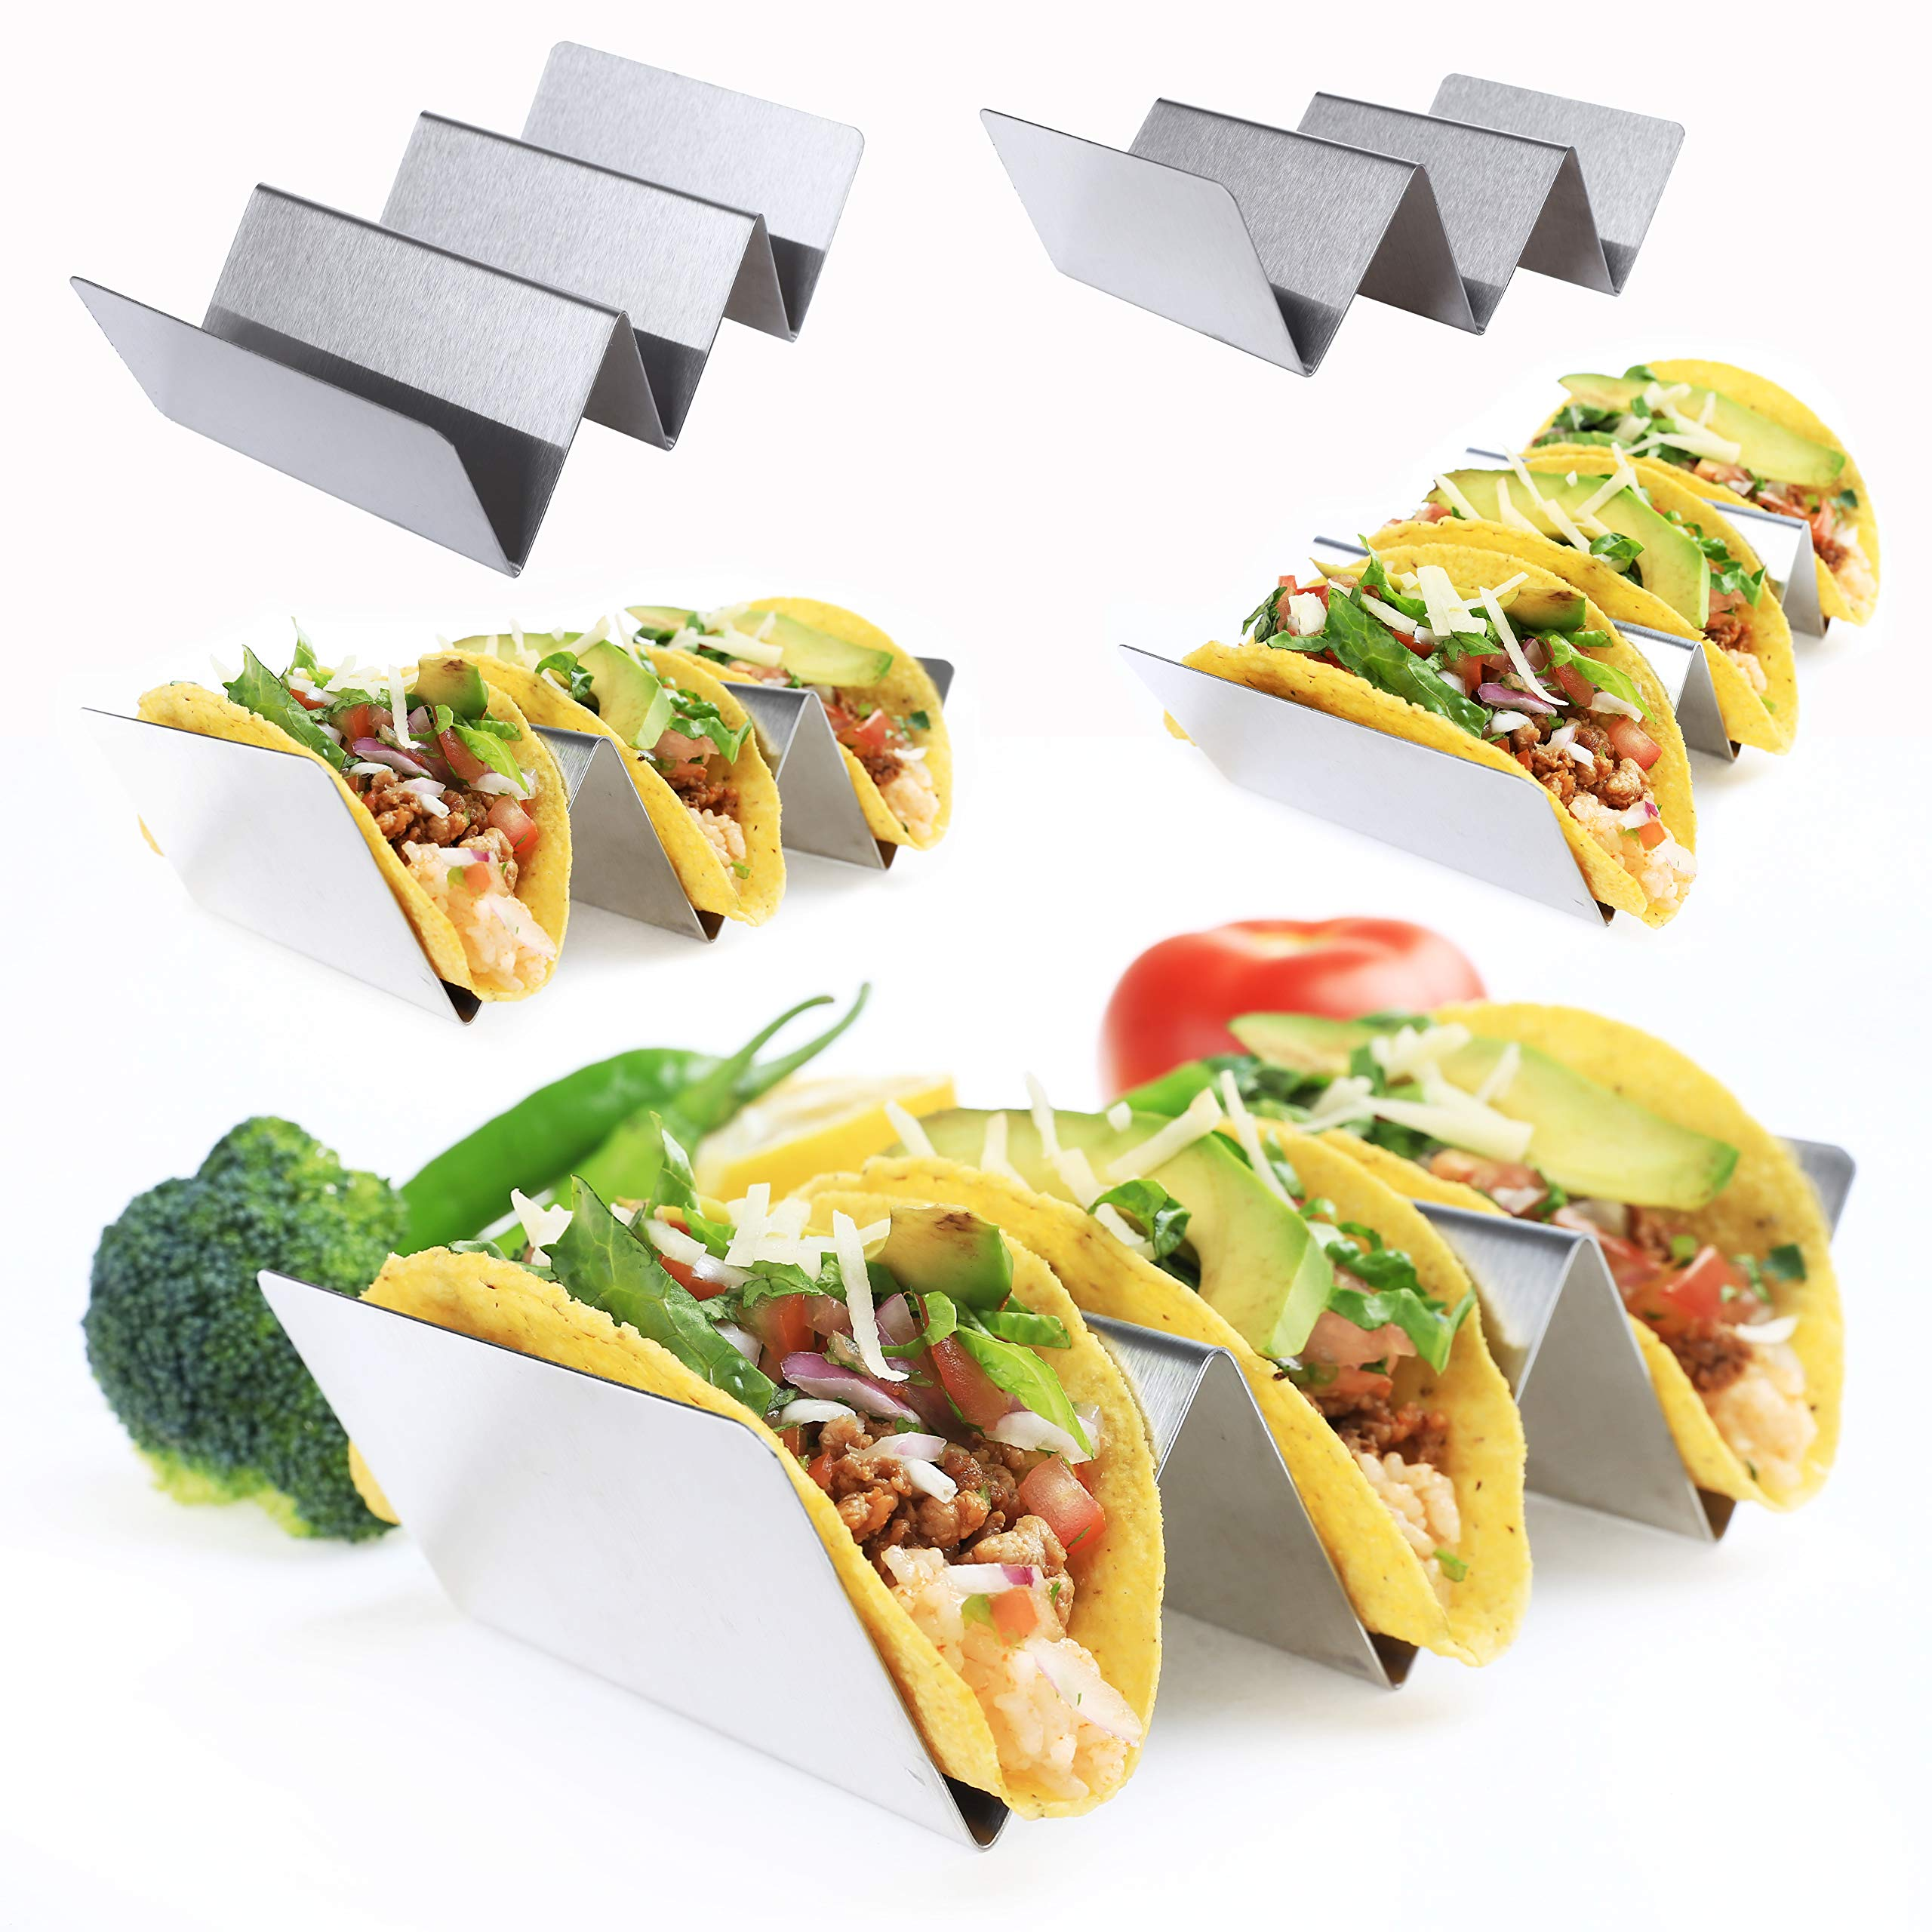 DeELF 5 Packs Taco Holders Stainless Steel Taco Stand Metal Taco Rack, Hold Up to 15 Tacos, Oven and Dishwasher Safe